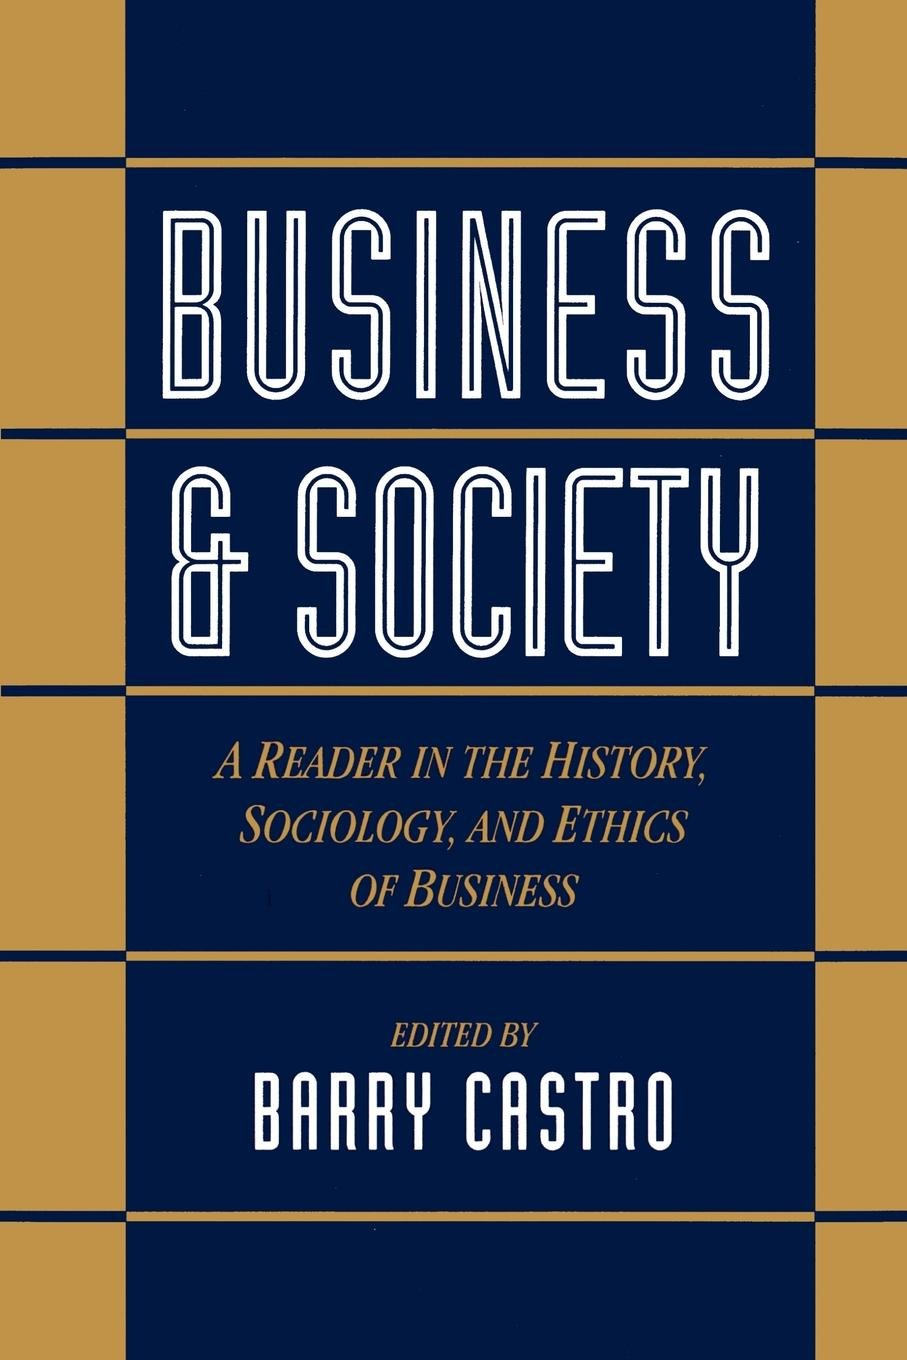 Business and Society: A Reader in the History, Sociology, and Ethics of Business by Oxford University Press